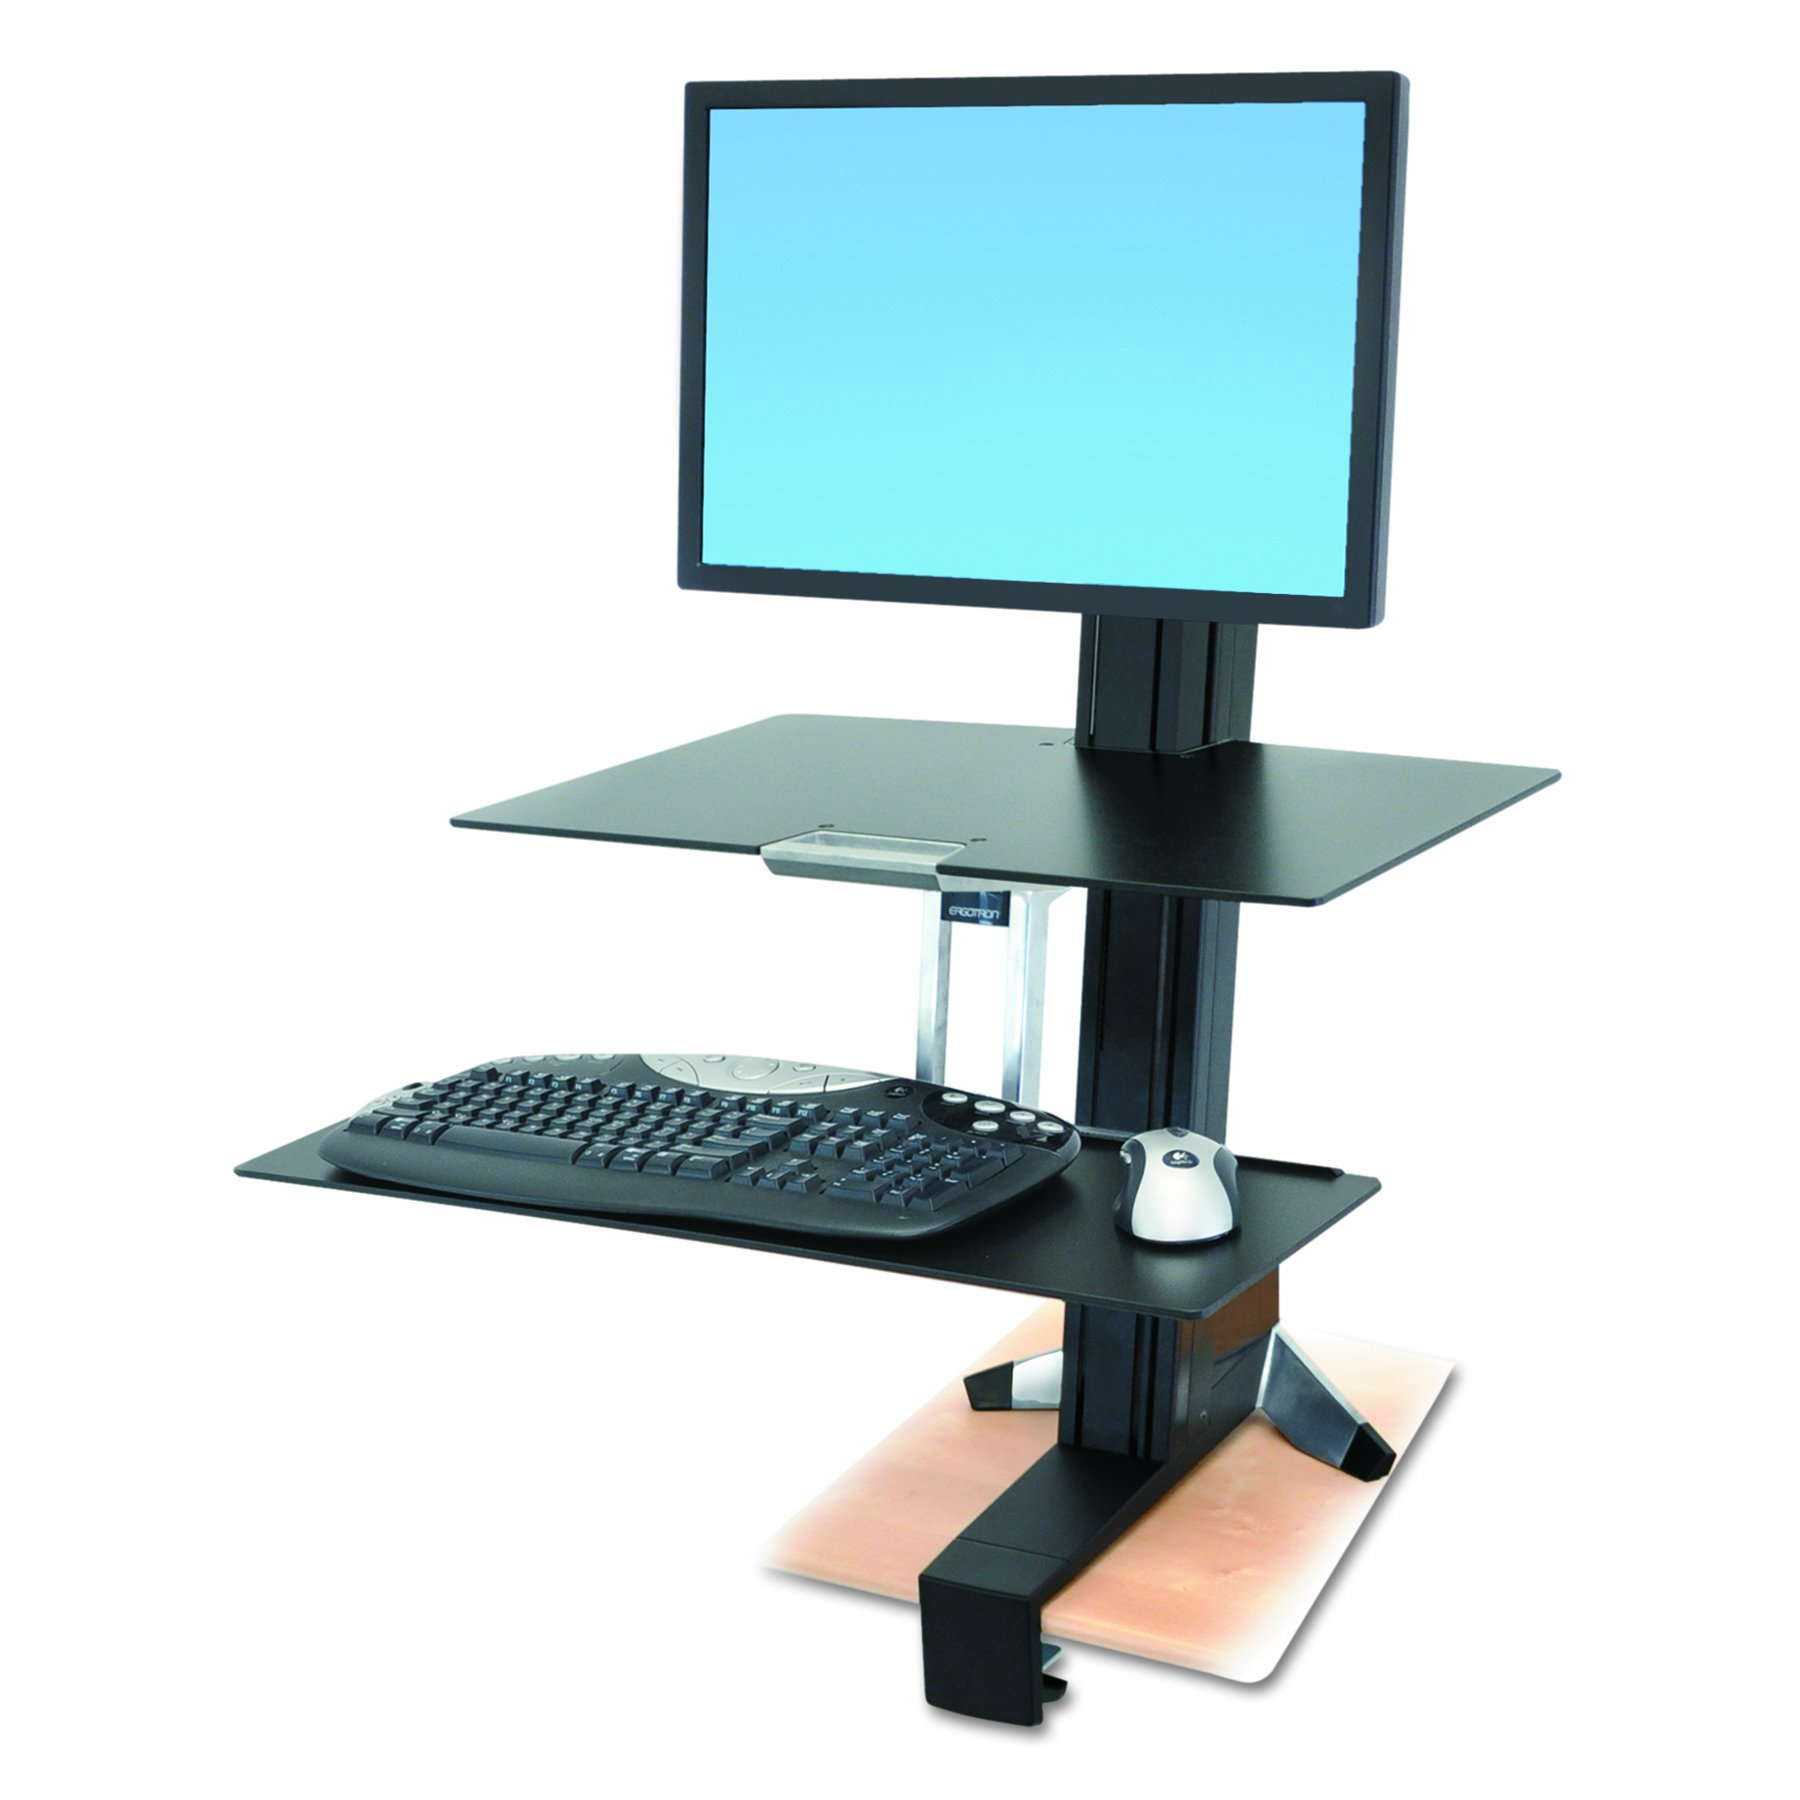 Ergotron WorkFit-S Single HD Workstation with Worksurface+ (33-351-200)